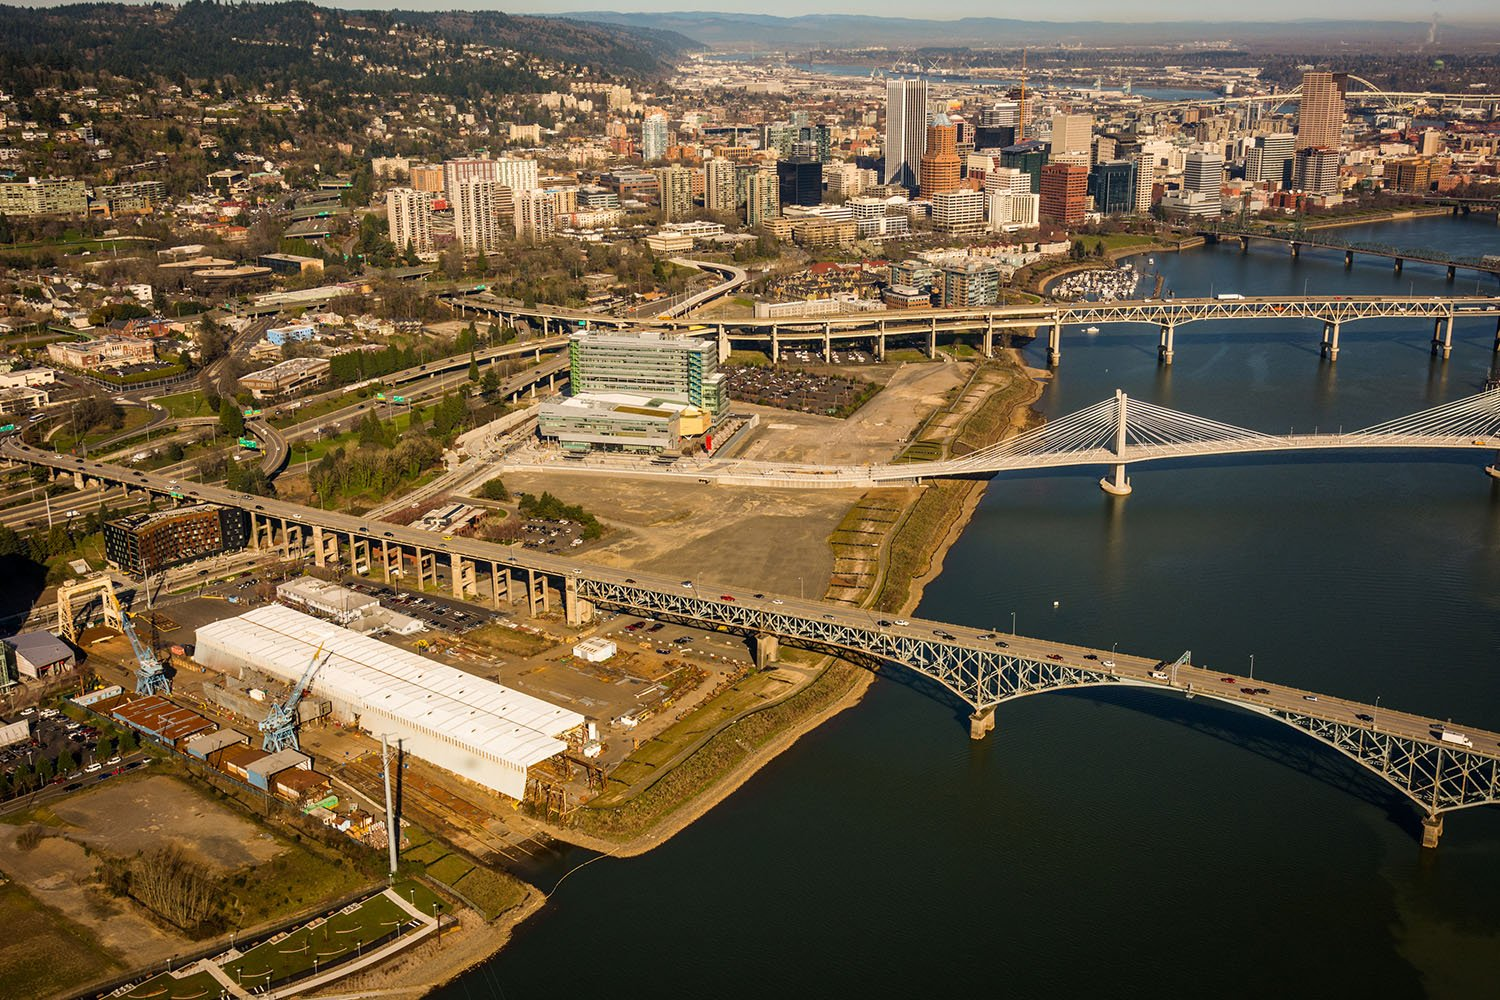 View of existing brownfield  site with downtown Portland nearby